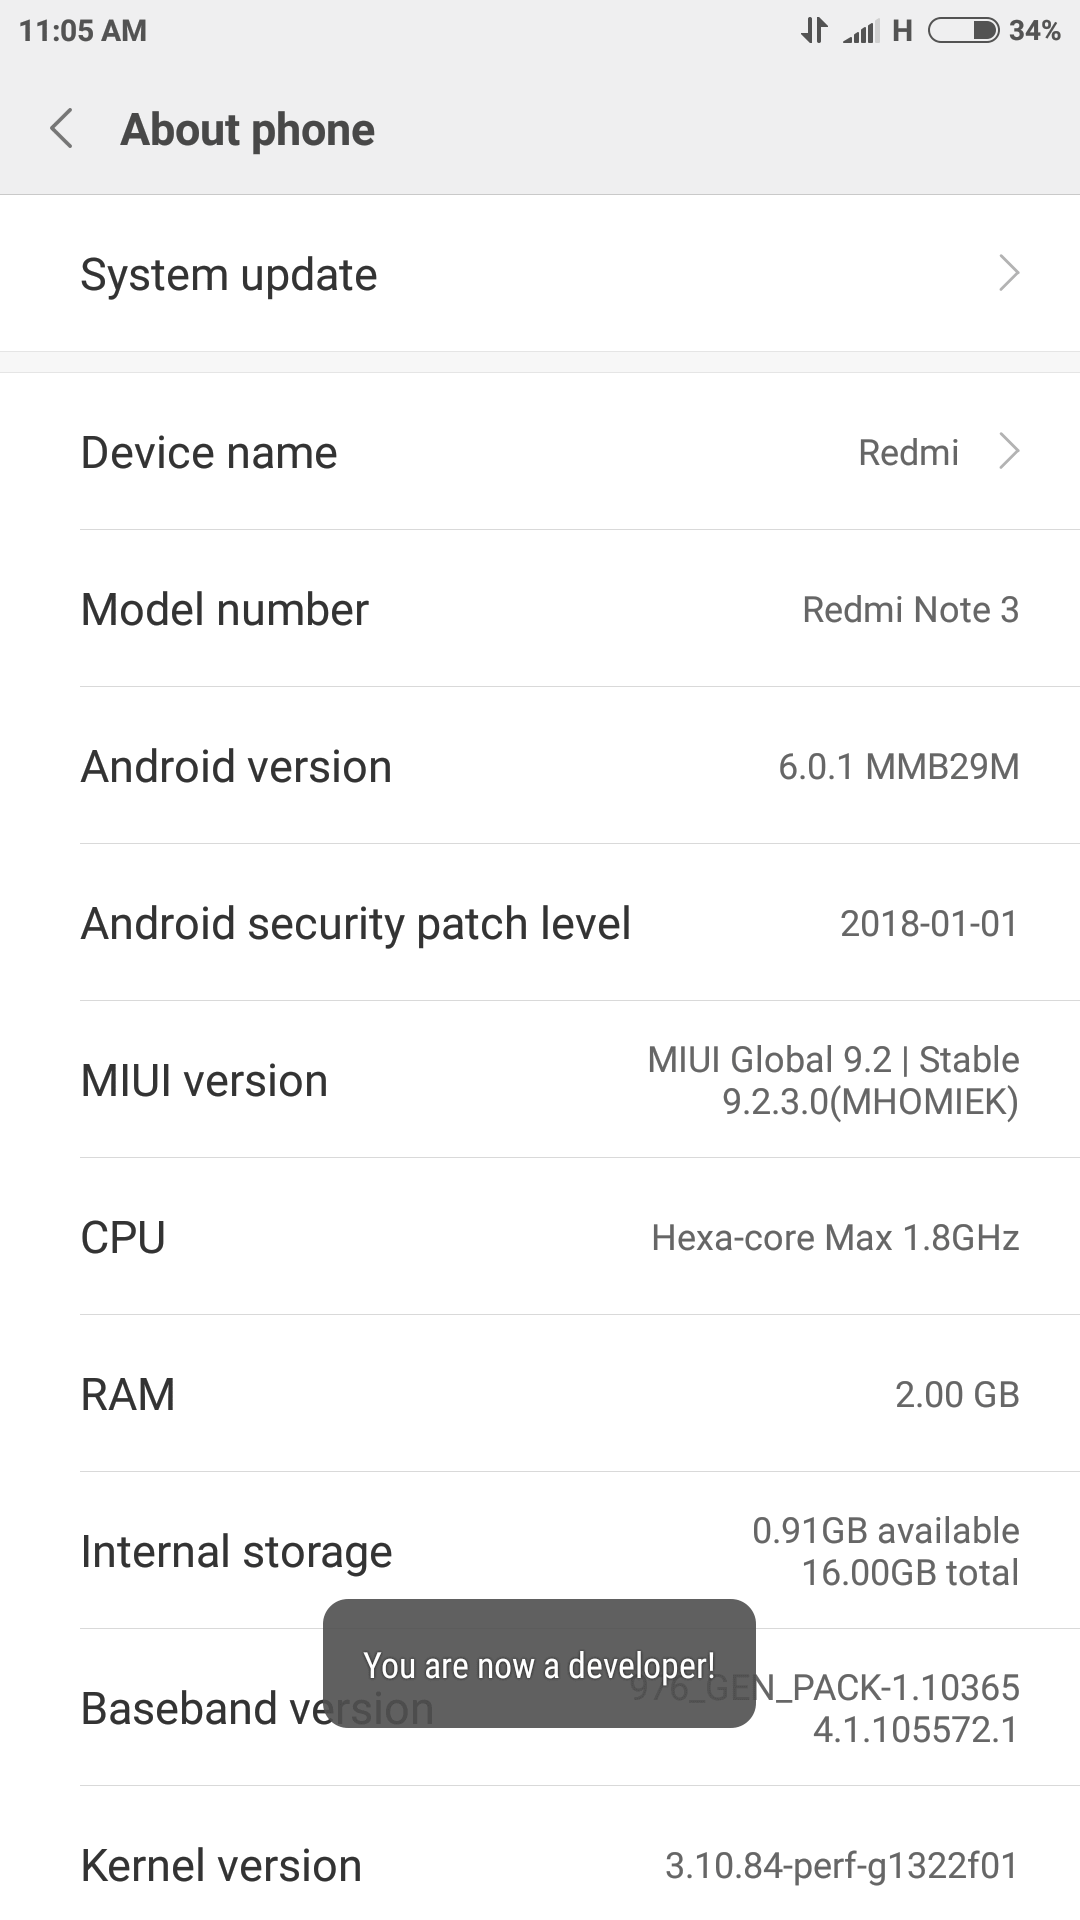 You can enable developer options by tapping 7-8 times on the build number in 'About phone' section